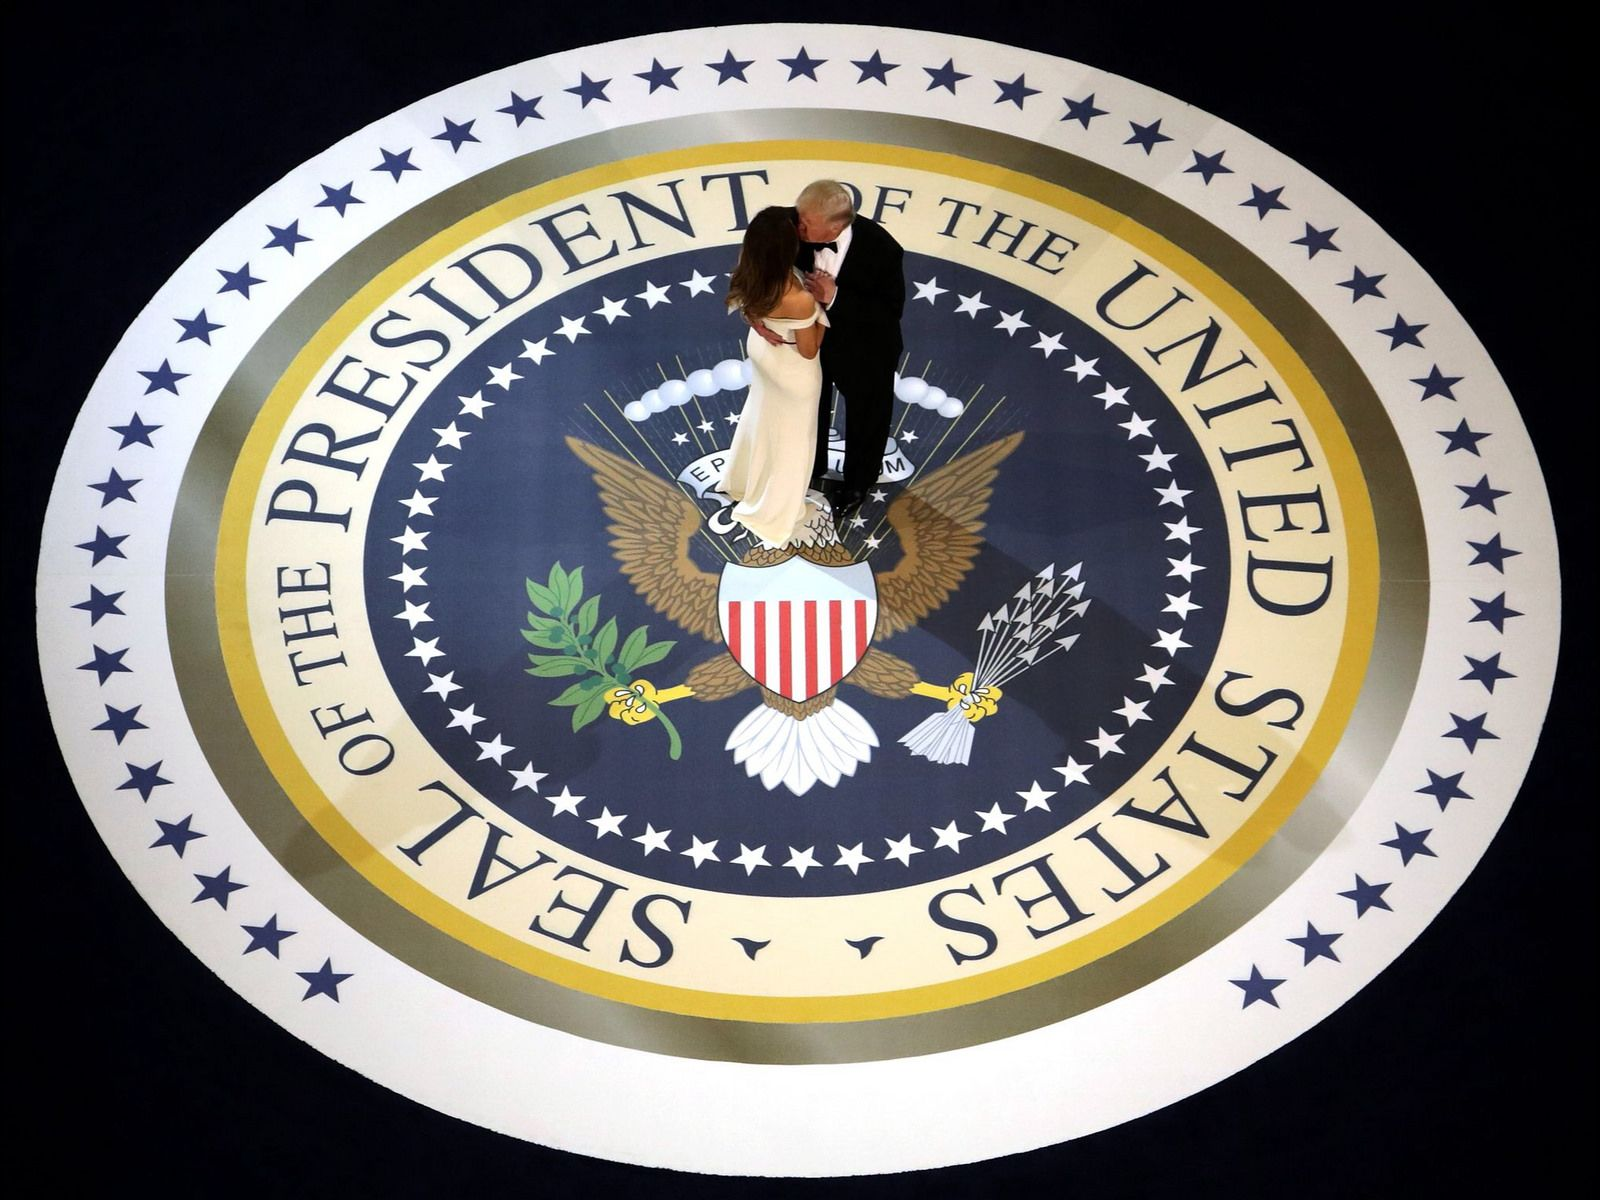 Donald J Trump 45th President Of The United States Janvier 2017